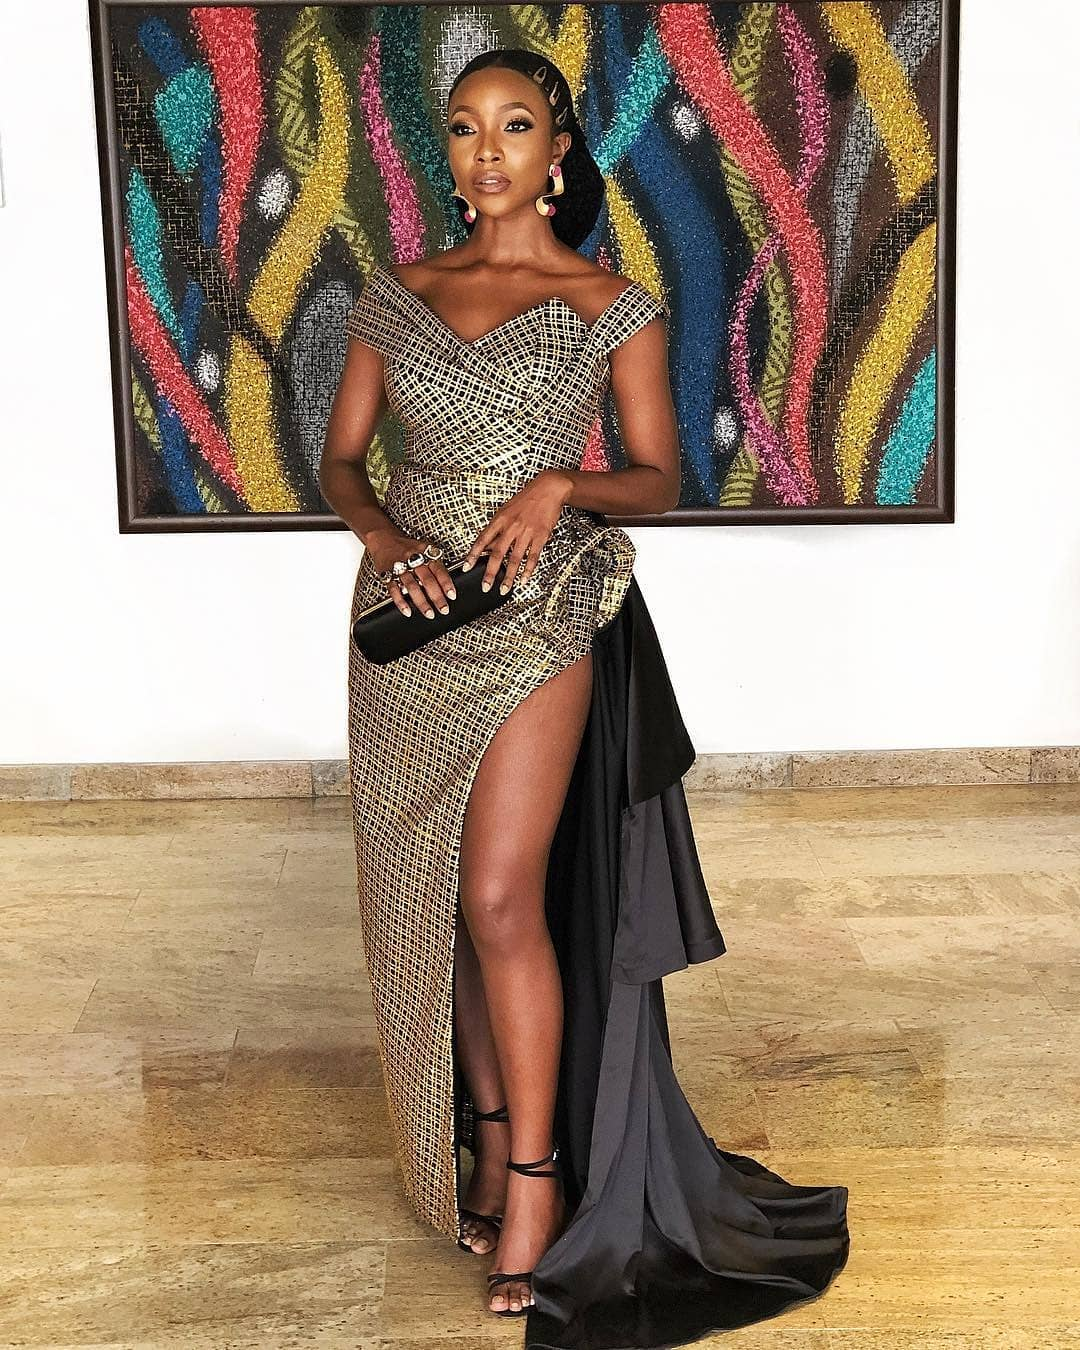 Best Dressed Nigerian Female Celebrities: The Top 10 ...